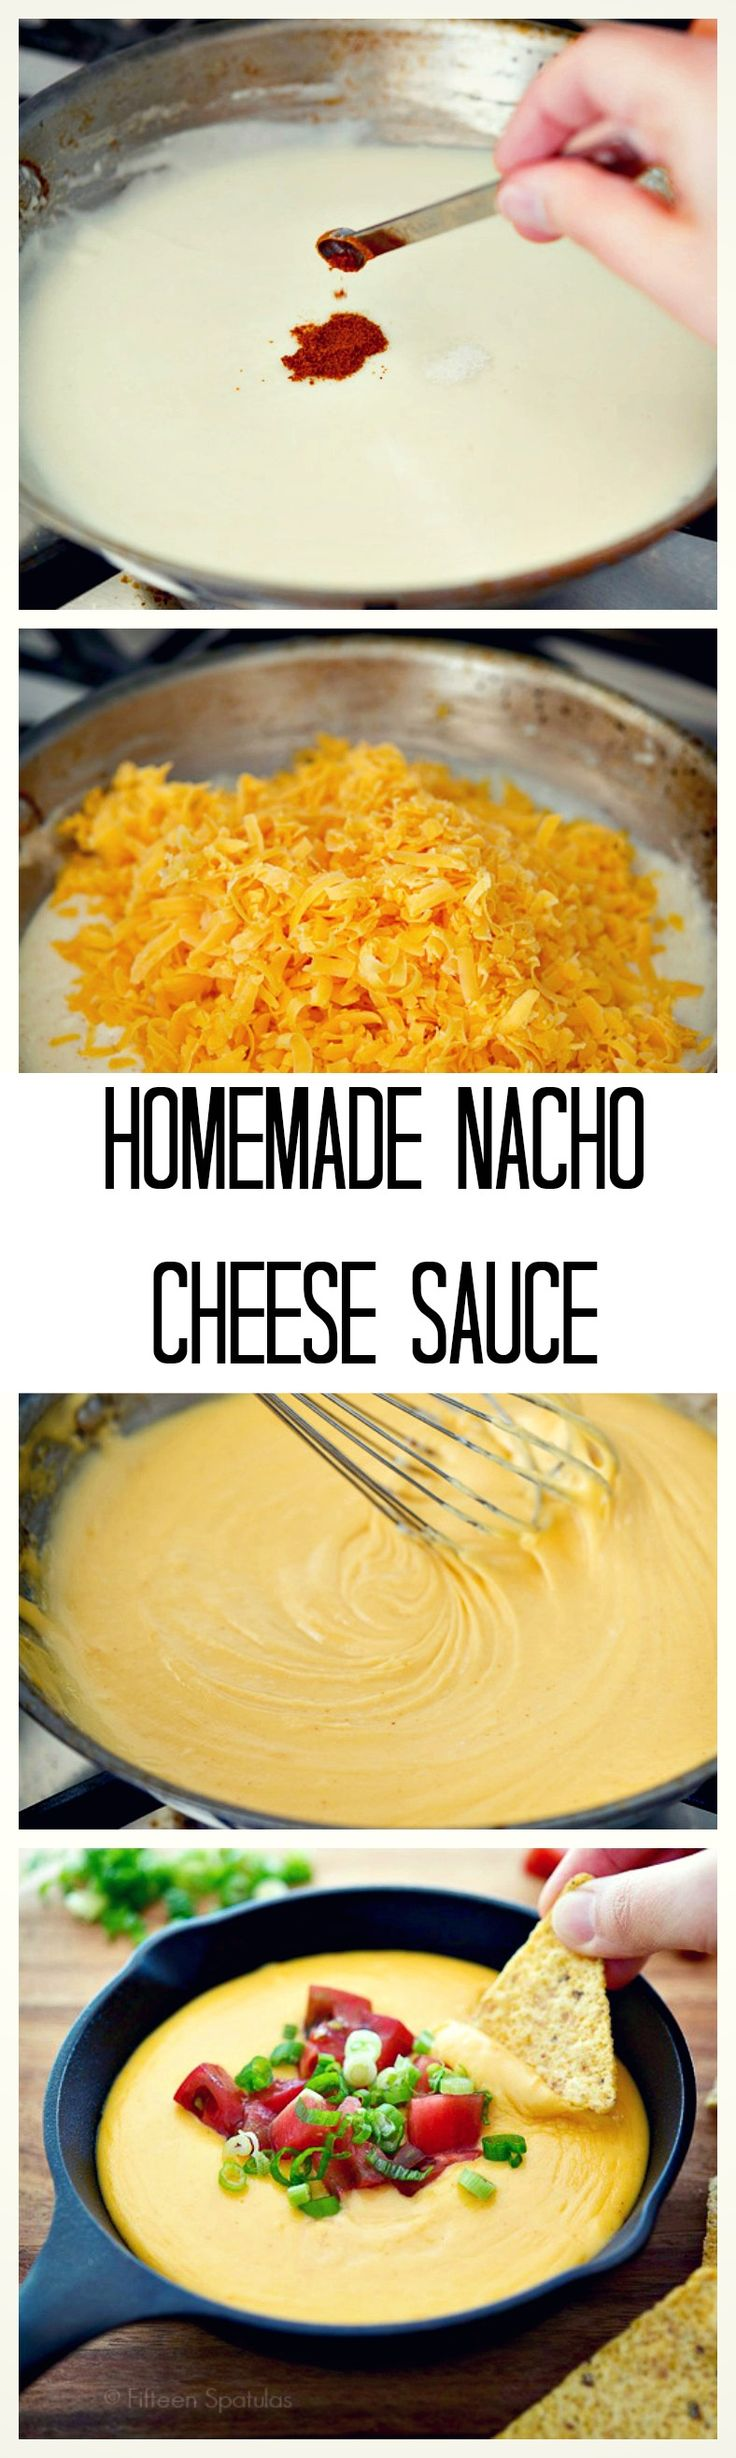 BEST  to and Sauce  air Cheese  This ONLY all natural five only  Cheese cheap  Homemade    Ho     Nacho minutes max takes Nacho ingredients       with the is Made flyknit make